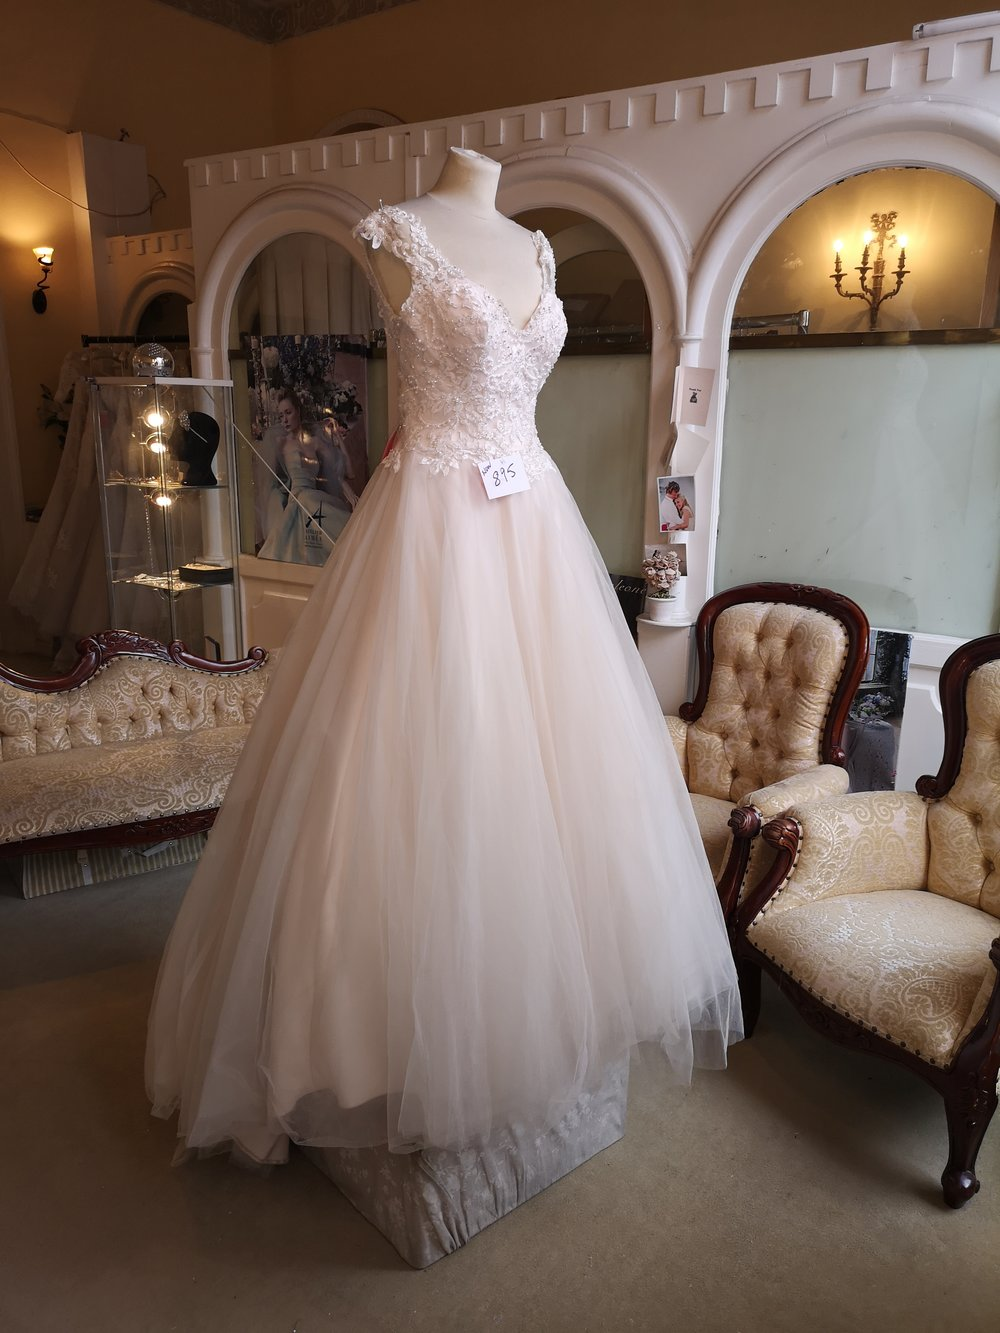 Ella Rosa A-line Tulle Dress  Colour : Blush  Size: 8  Was $1,595 now €895  Ref: E102